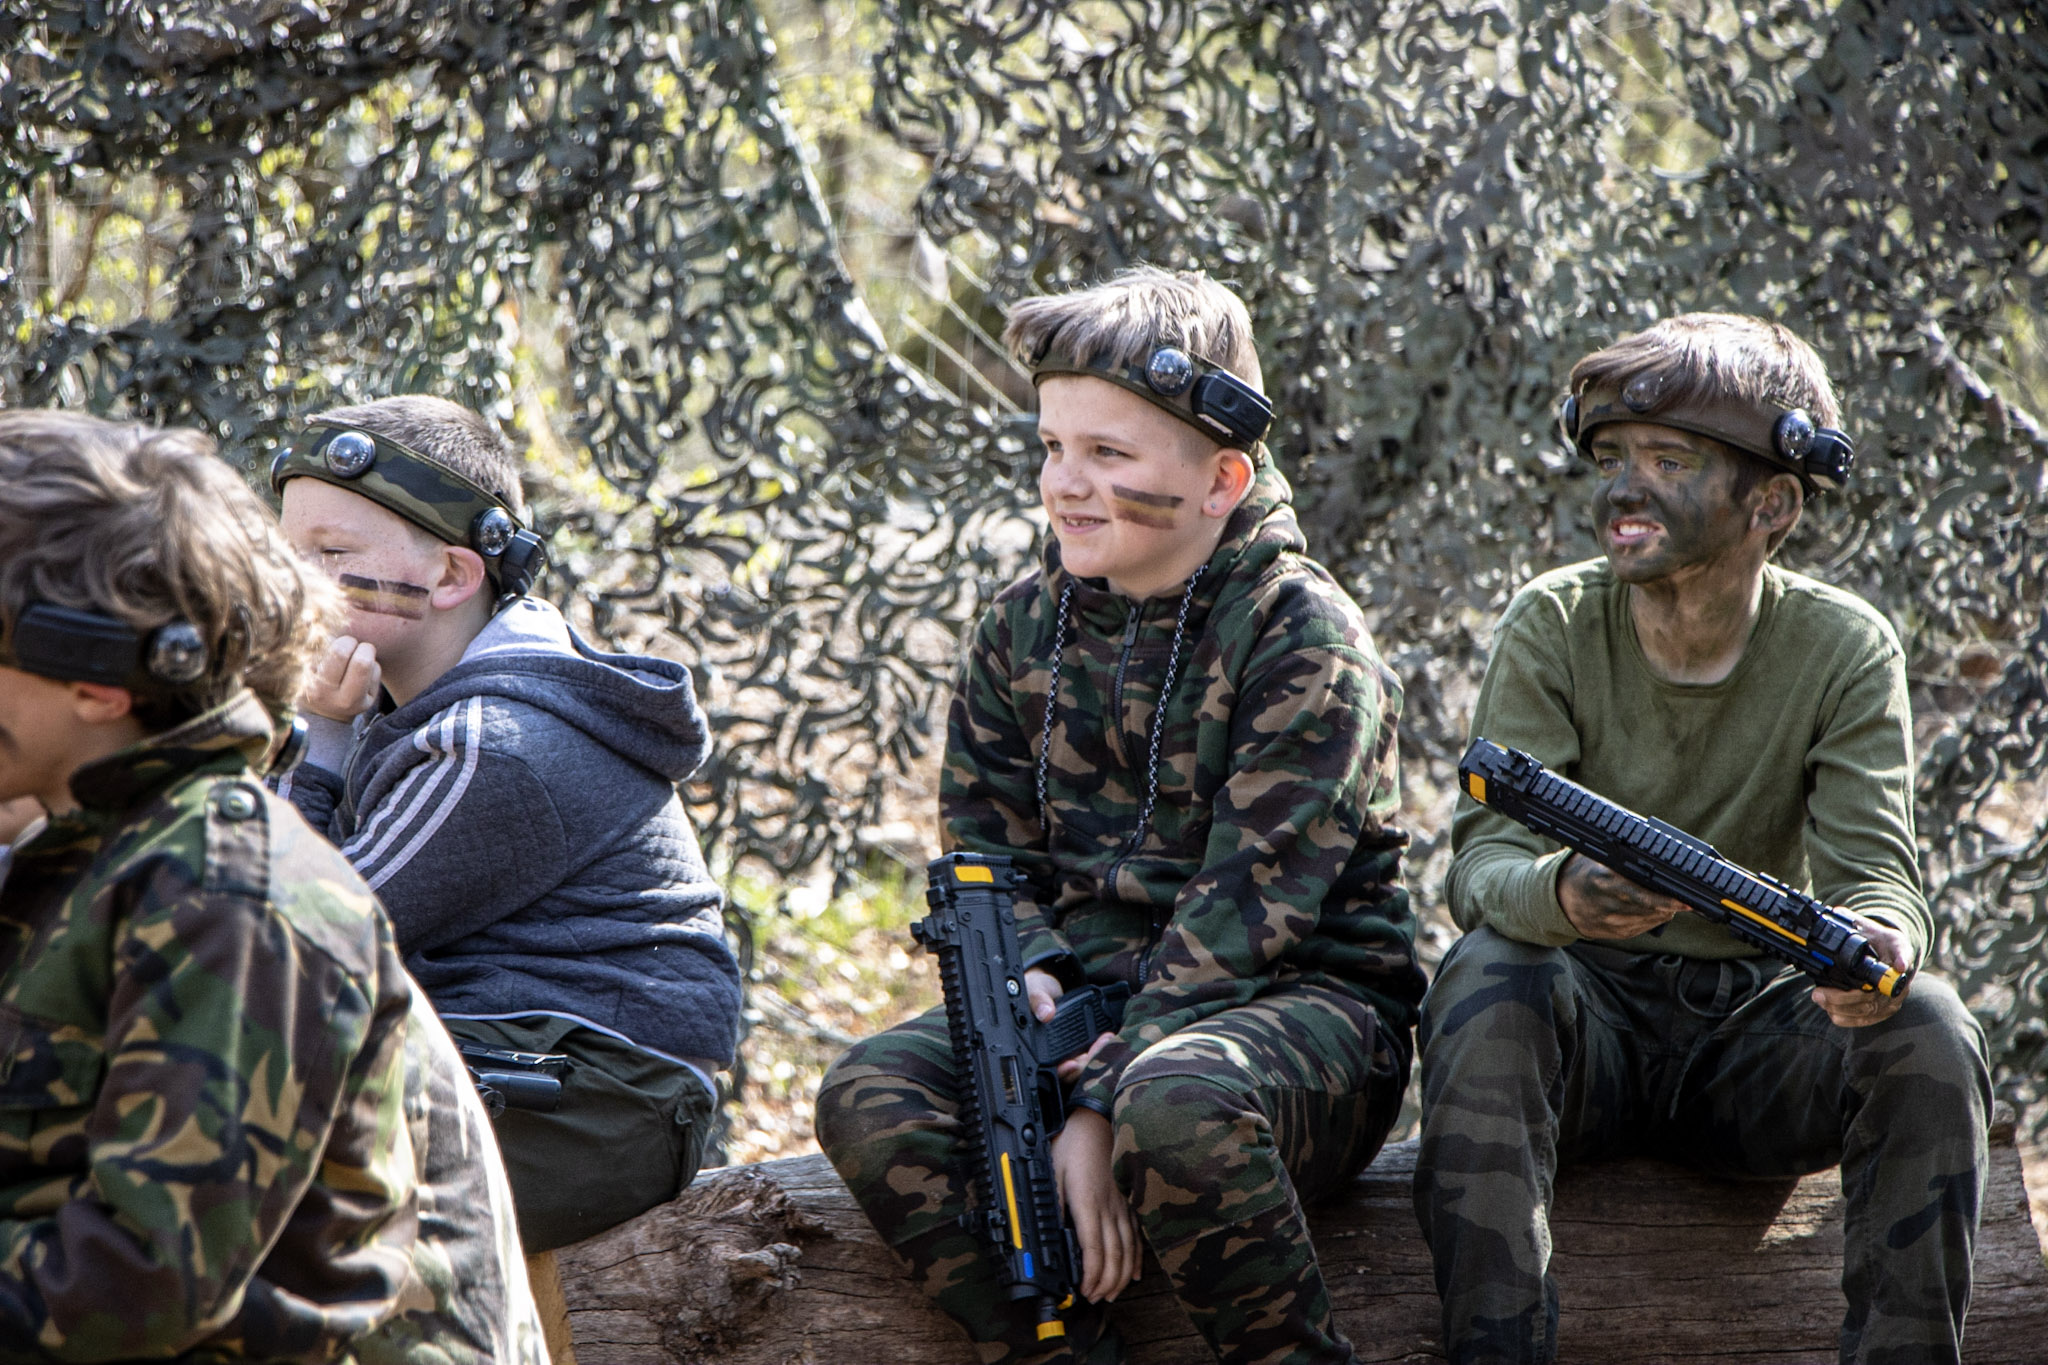 A group of boys enjoying a BattleZone kids party in The New Forest